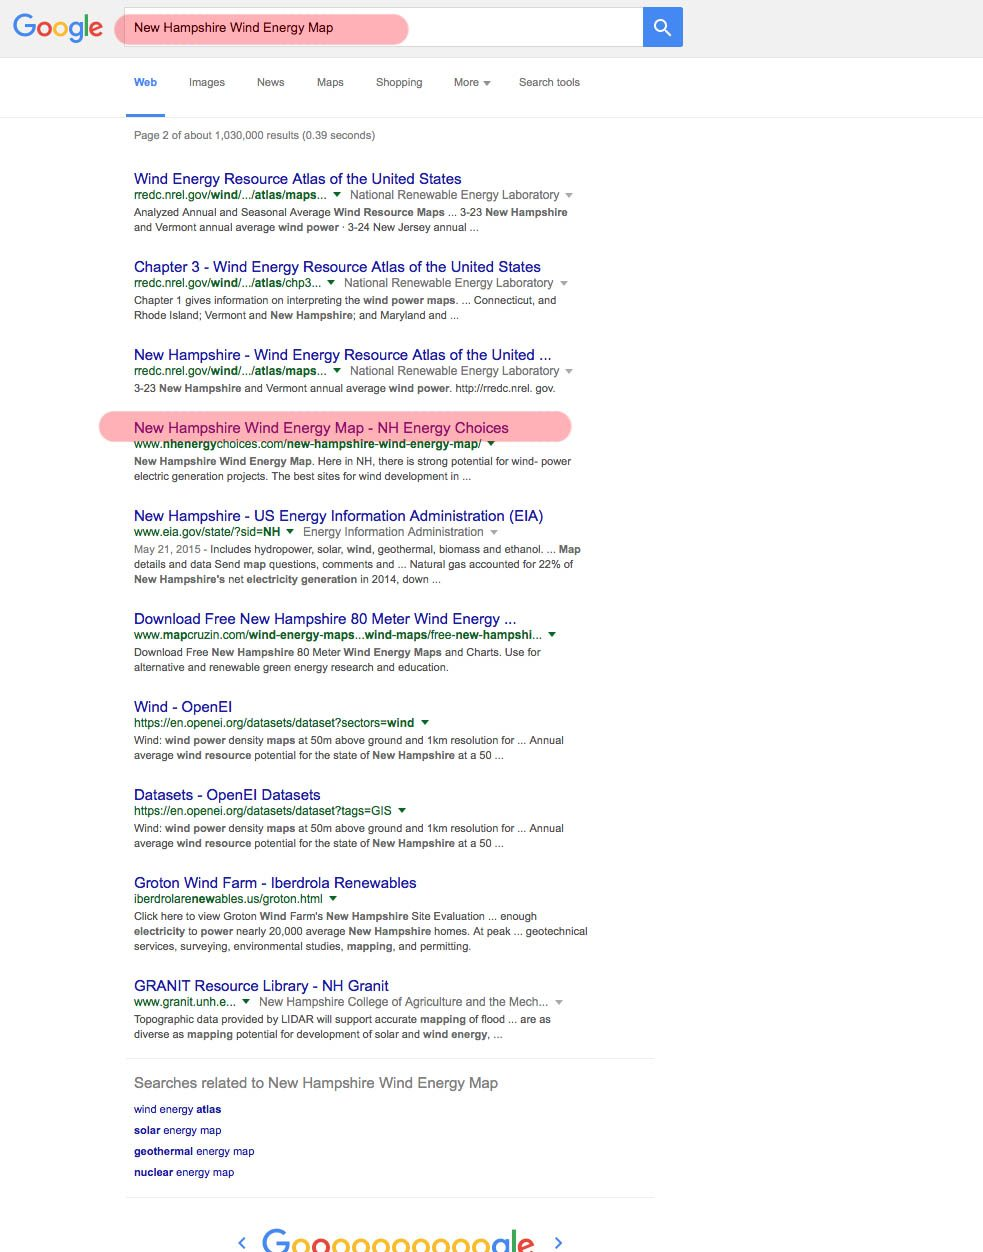 NH Energy Choices SEO Report For NH | WELCOME TO SVEND DESIGN